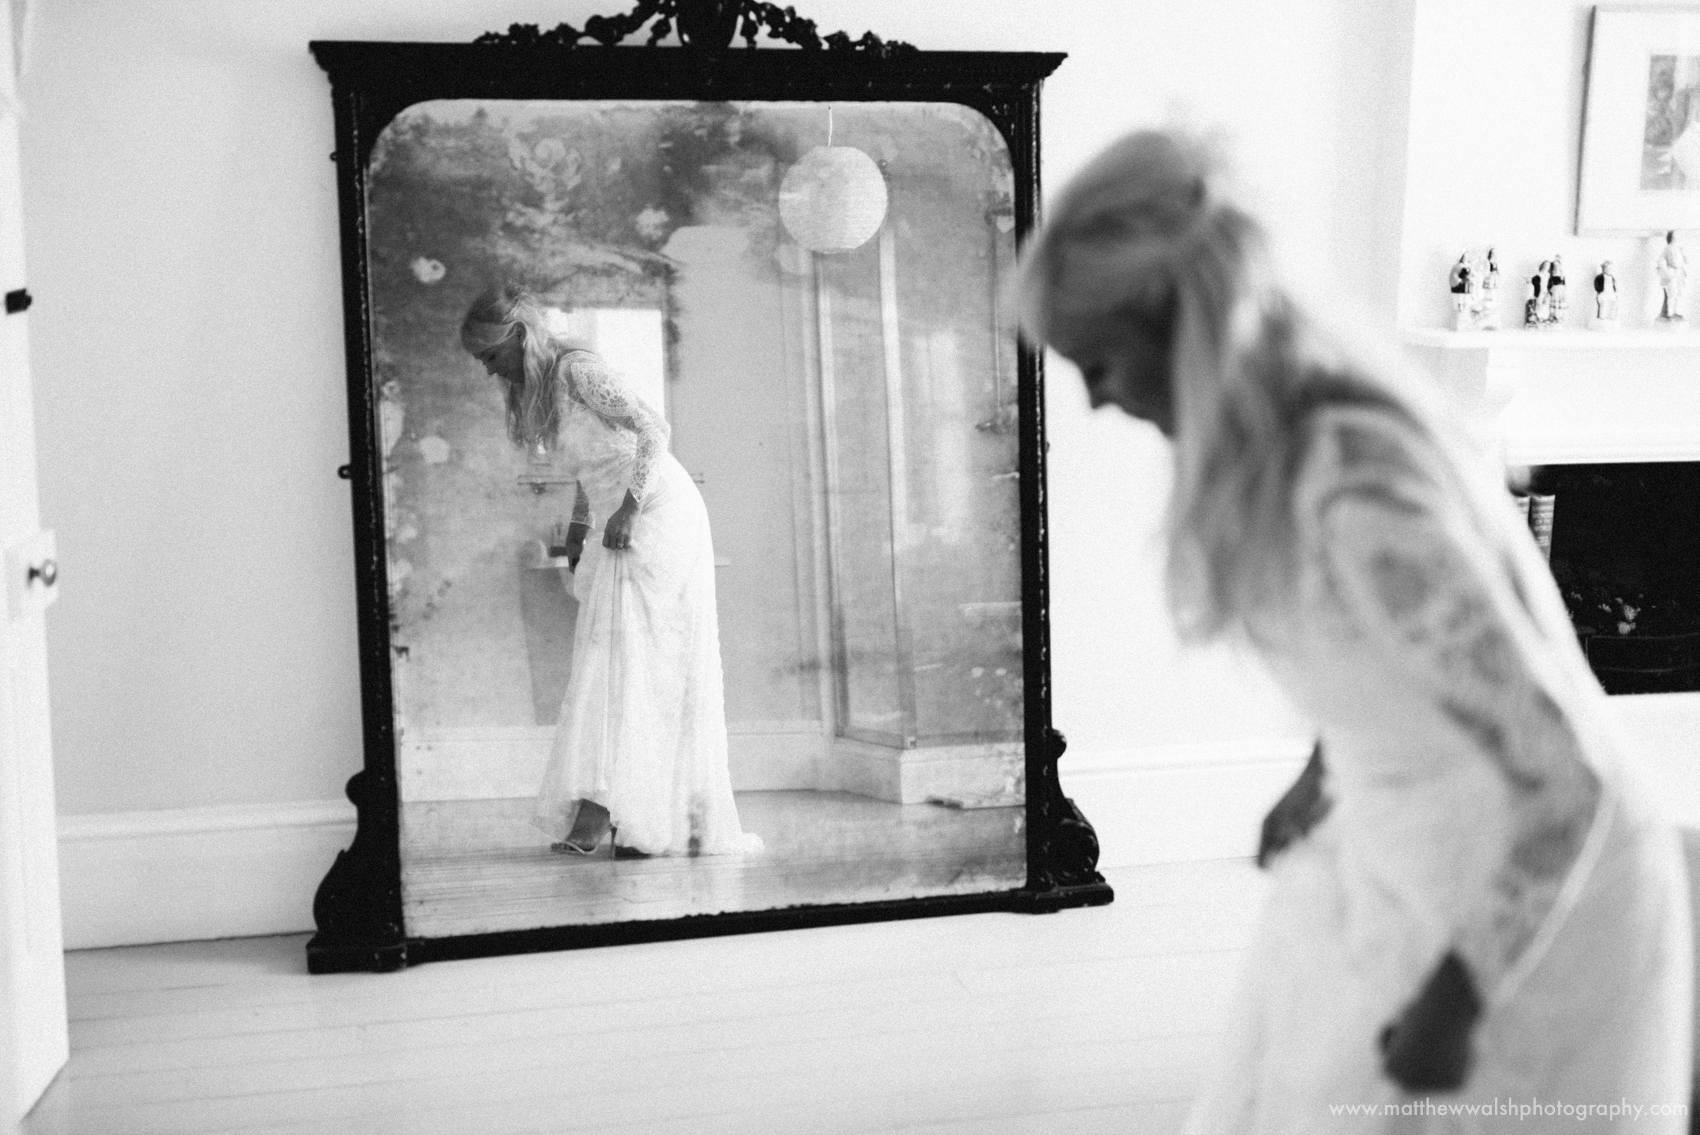 The bride checks her dress in the mirror in the bridal suite at Lyde Court wedding venue